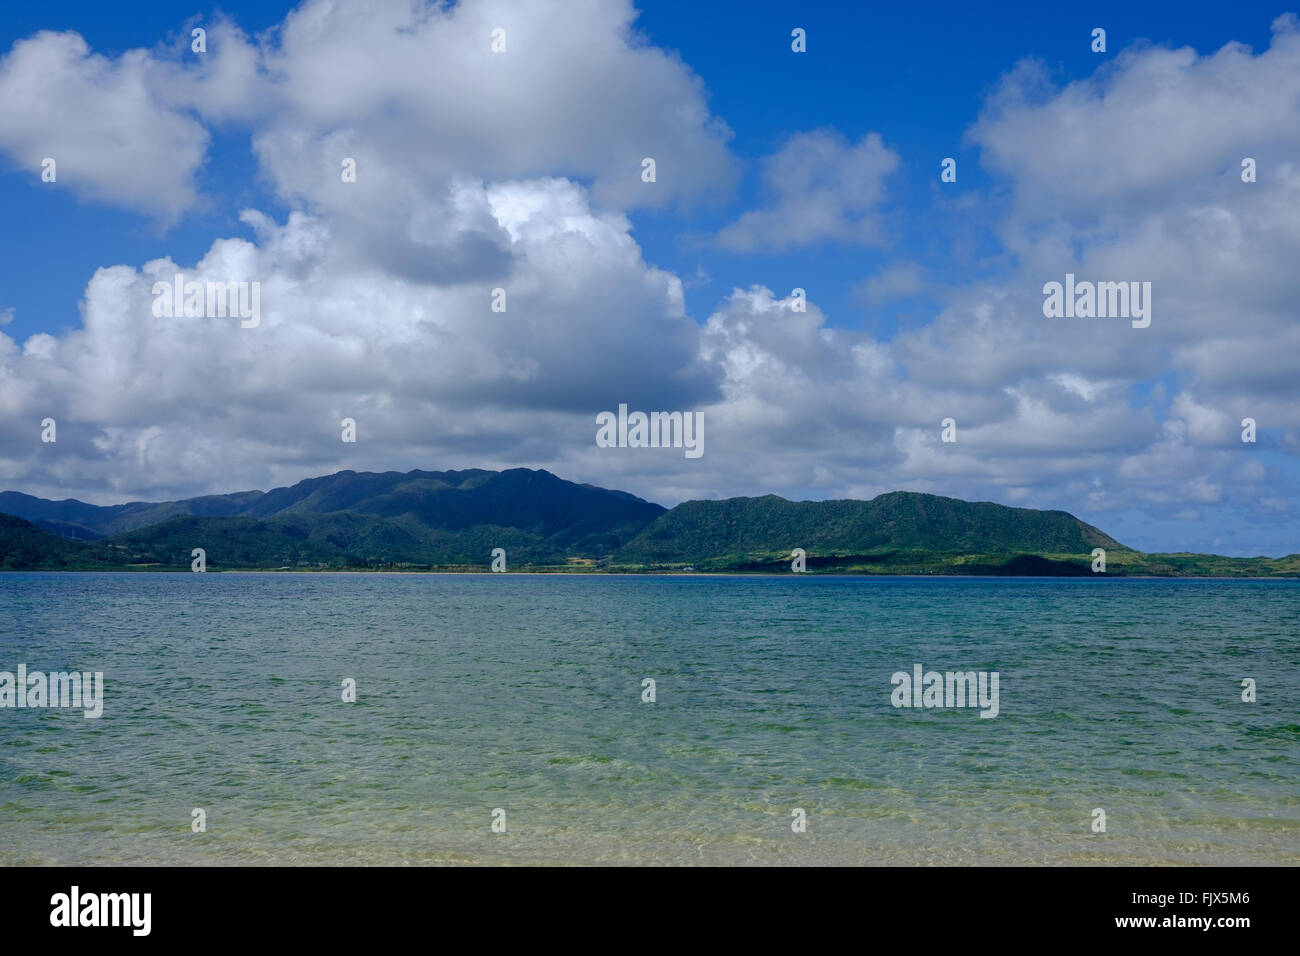 Scenic View Of Sea And Mountains Against Cloudy Sky - Stock Image